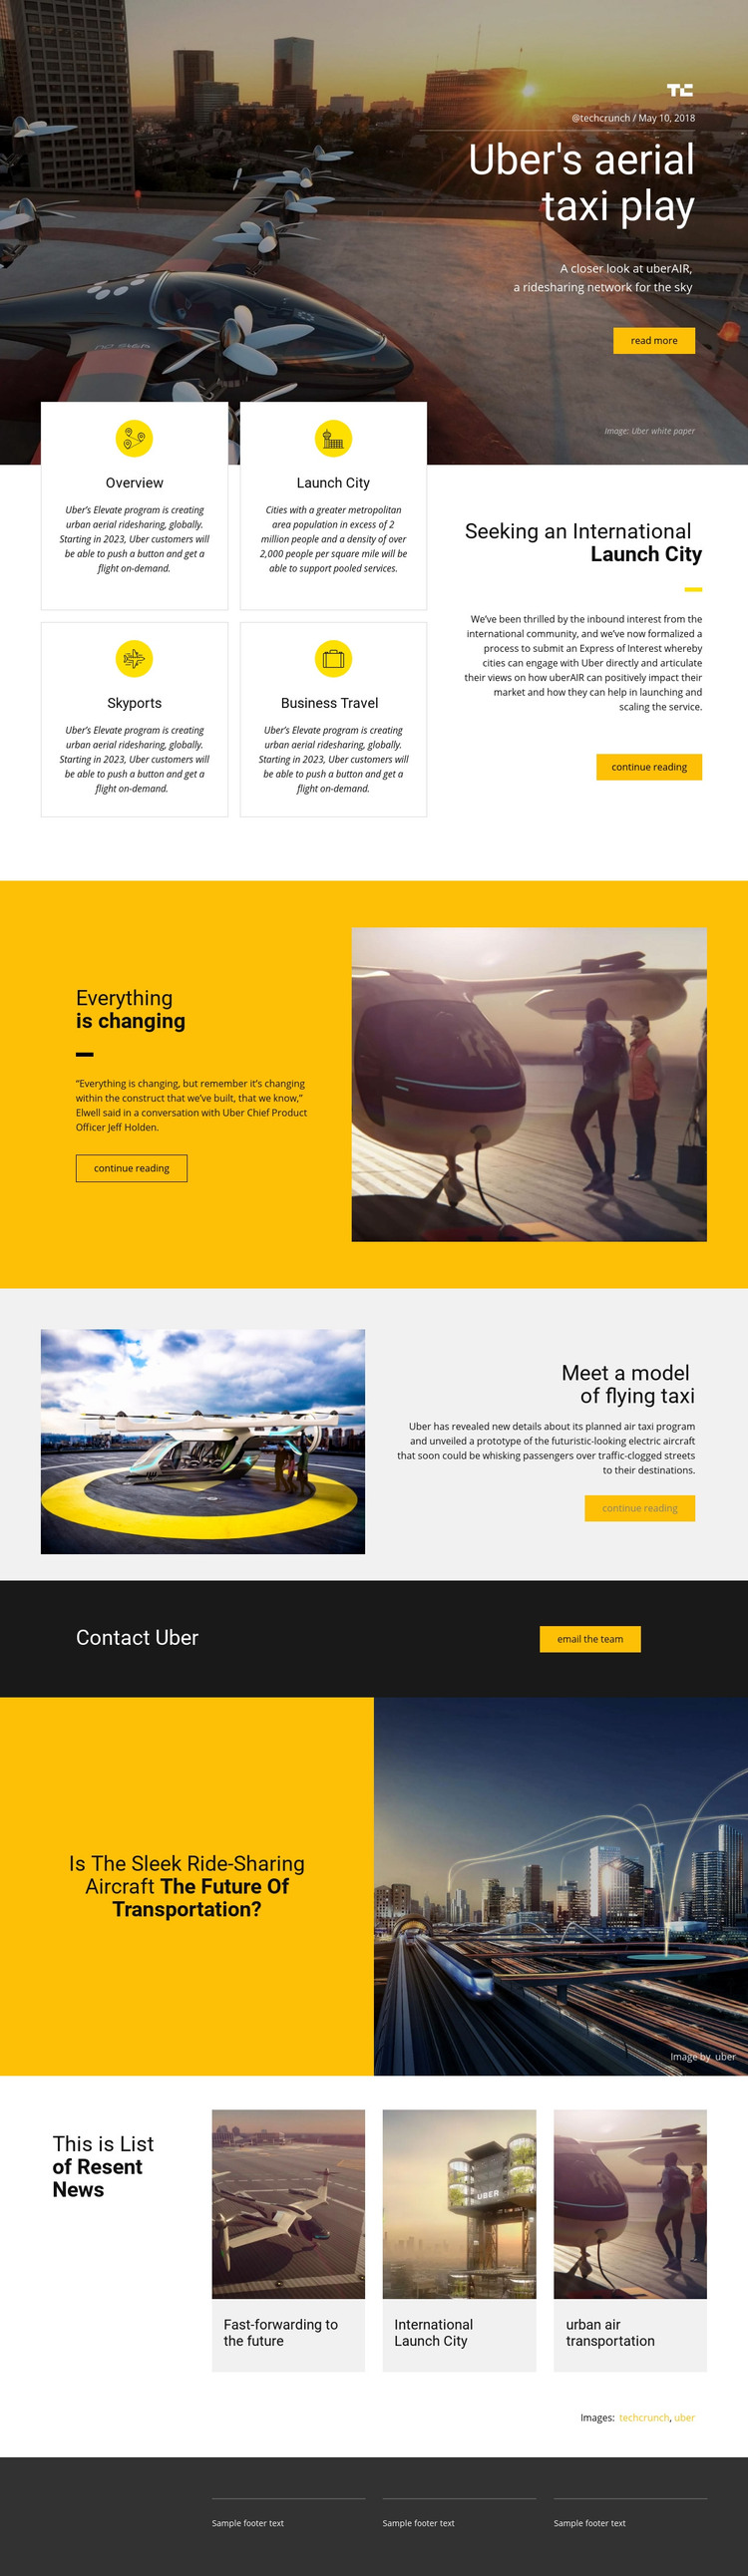 Uber's Aerial Taxi Play Homepage Design